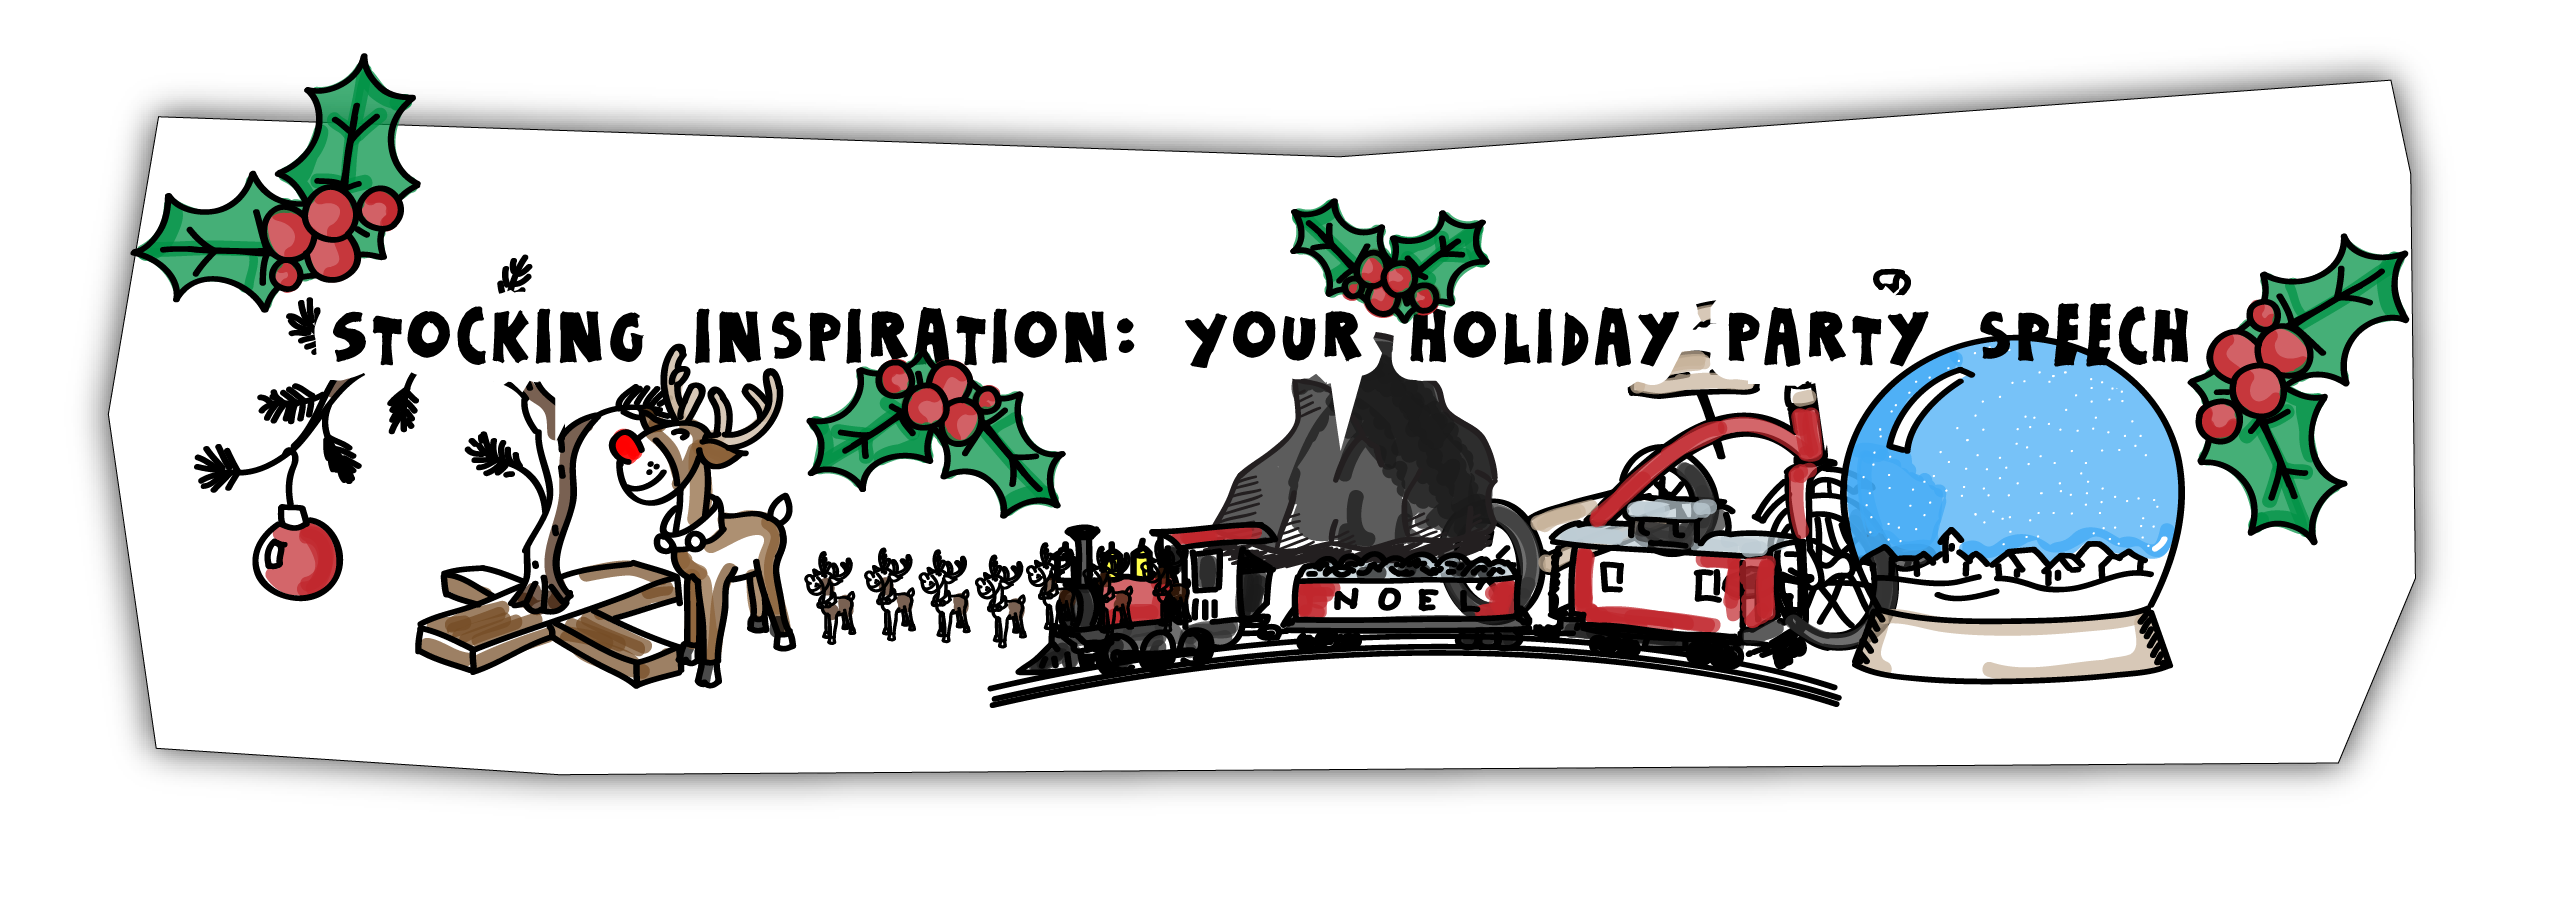 Christmas Party Speeches Part - 20: Stocking Inspiration: Your Holiday Party Speech